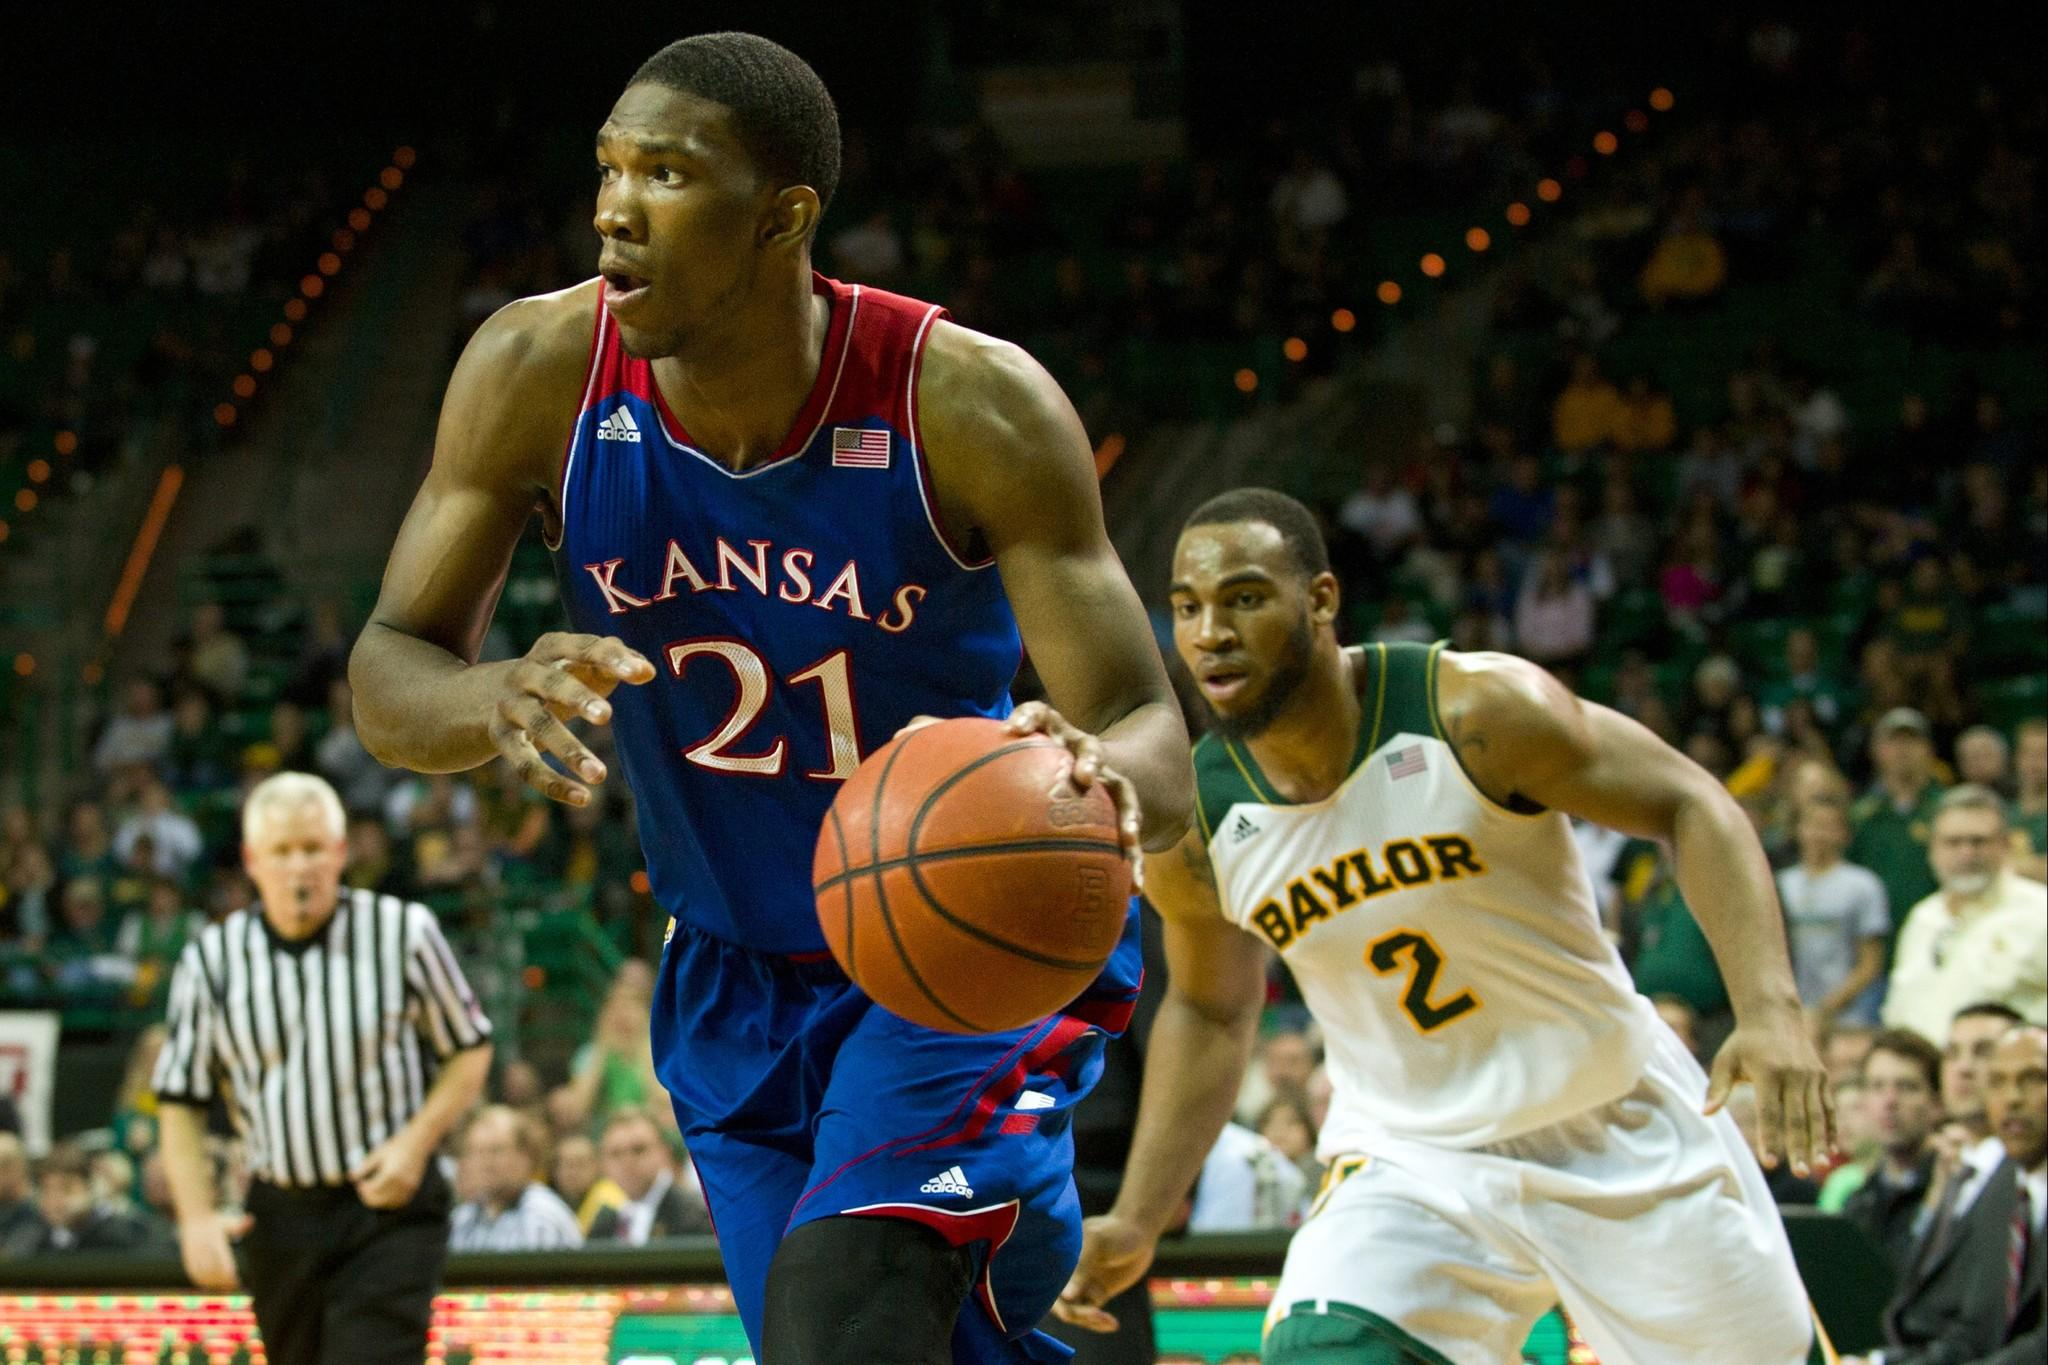 Joel Embiid of Kansas drives to the basket against Baylor.